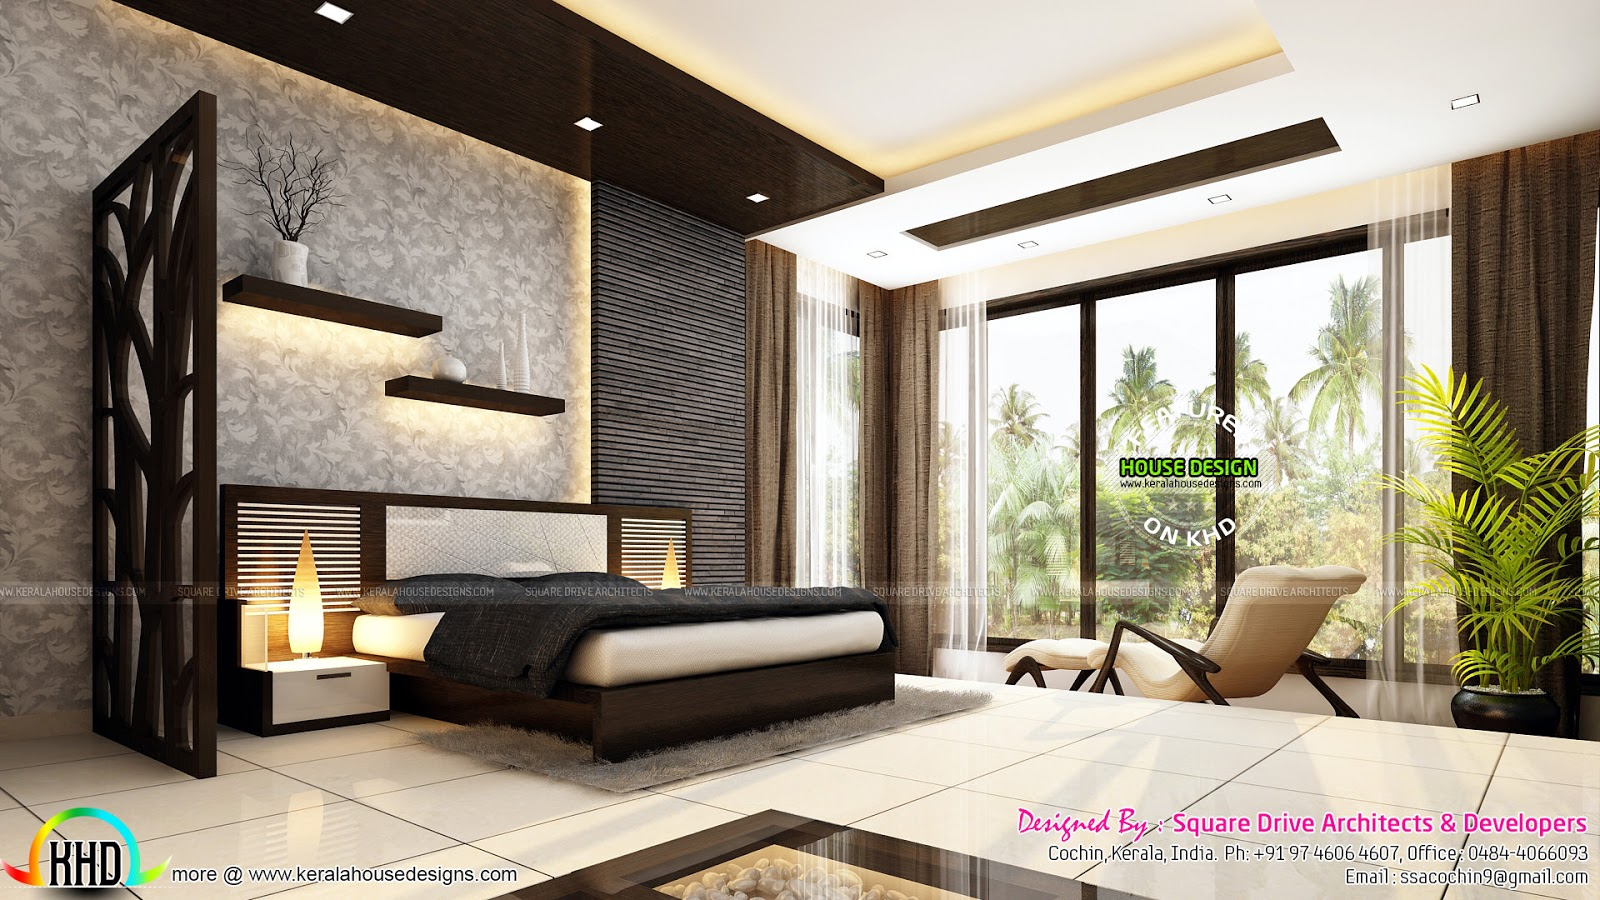 Very beautiful modern interior designs kerala home for Beautiful rooms interior design